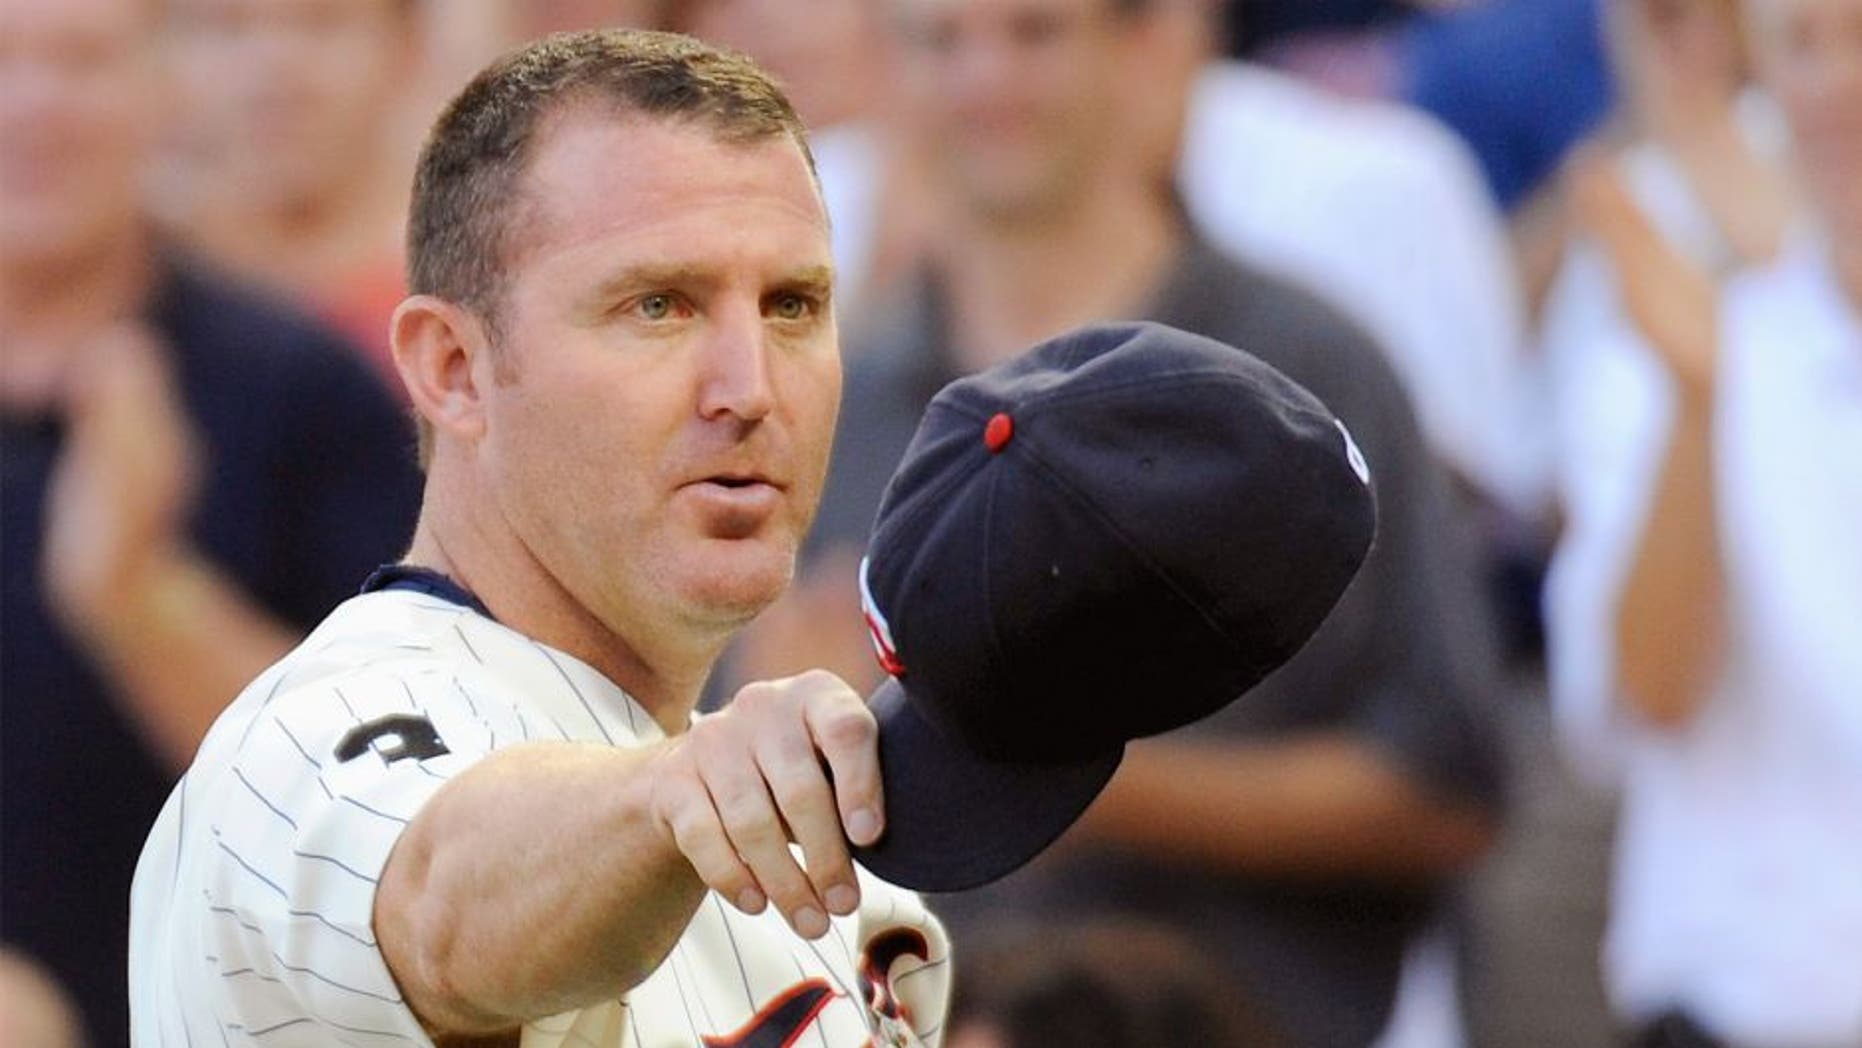 MINNEAPOLIS, MN - AUGUST 18: Jim Thome #25 of the Minnesota Twins waves to fans during a ceremony honoring his 600th career home run before the game against the New York Yankees on August 18, 2011 at Target Field in Minneapolis, Minnesota. The Yankees won 8-4. (Photo by Hannah Foslien/Getty Images)